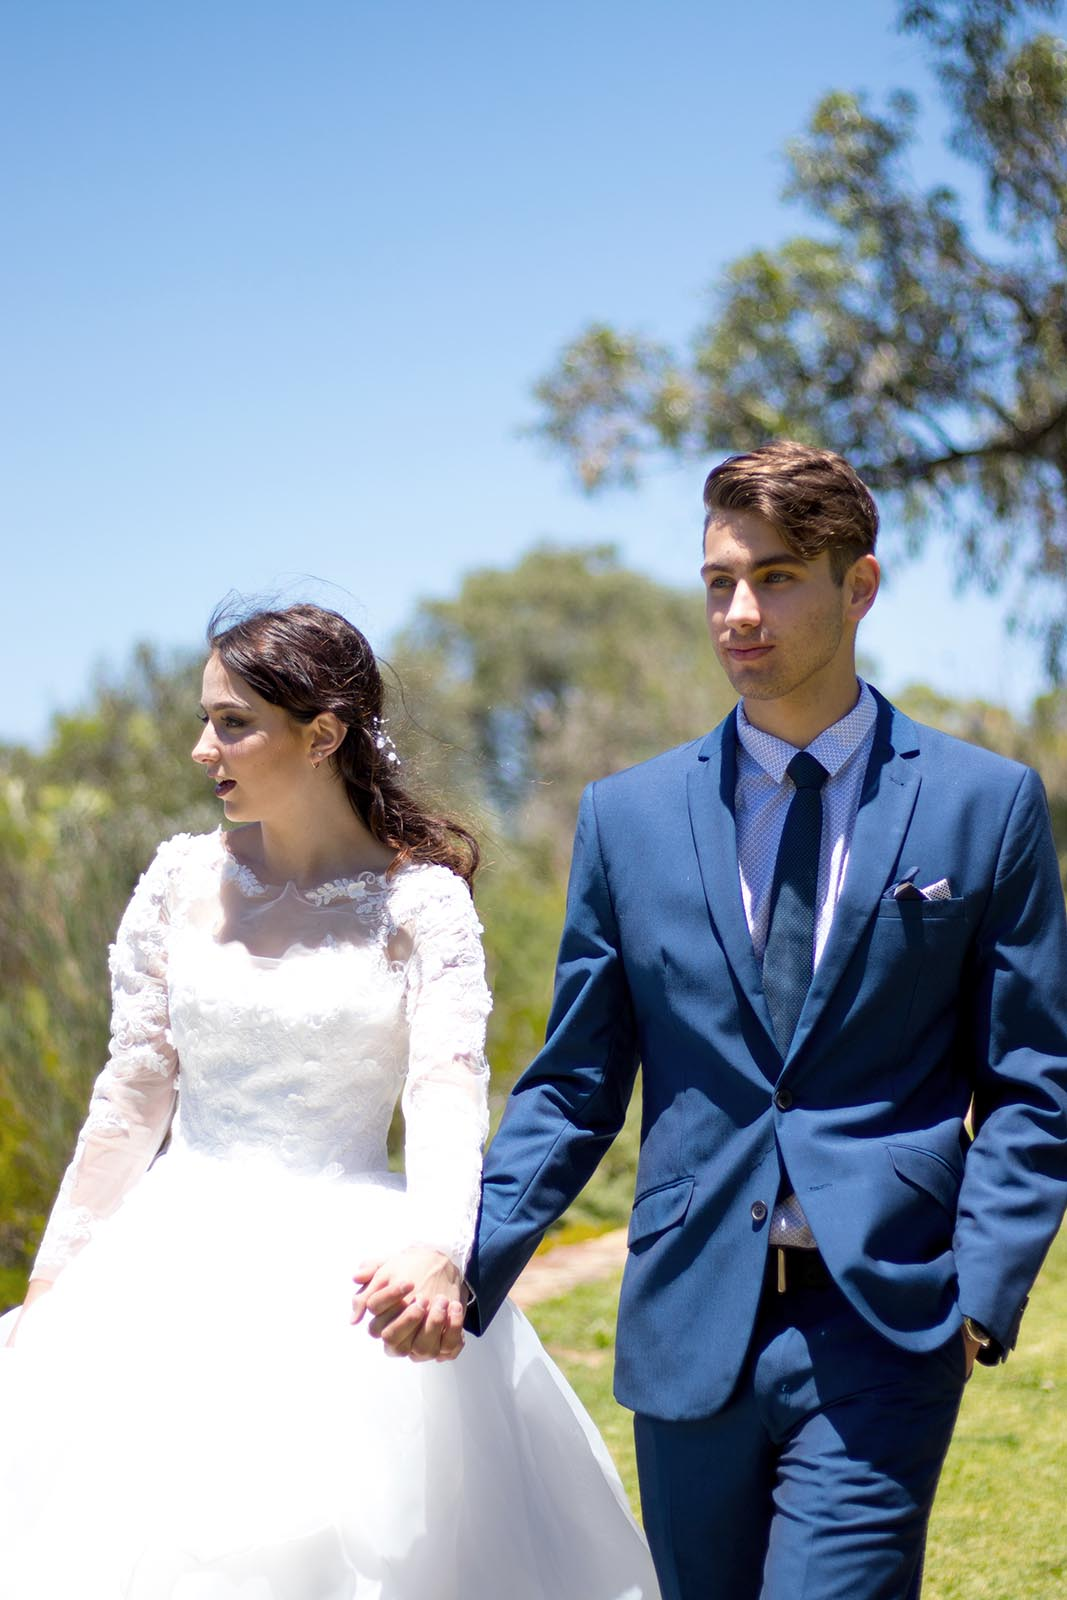 bride-and-groom-go-for-a-walk-in-the-park